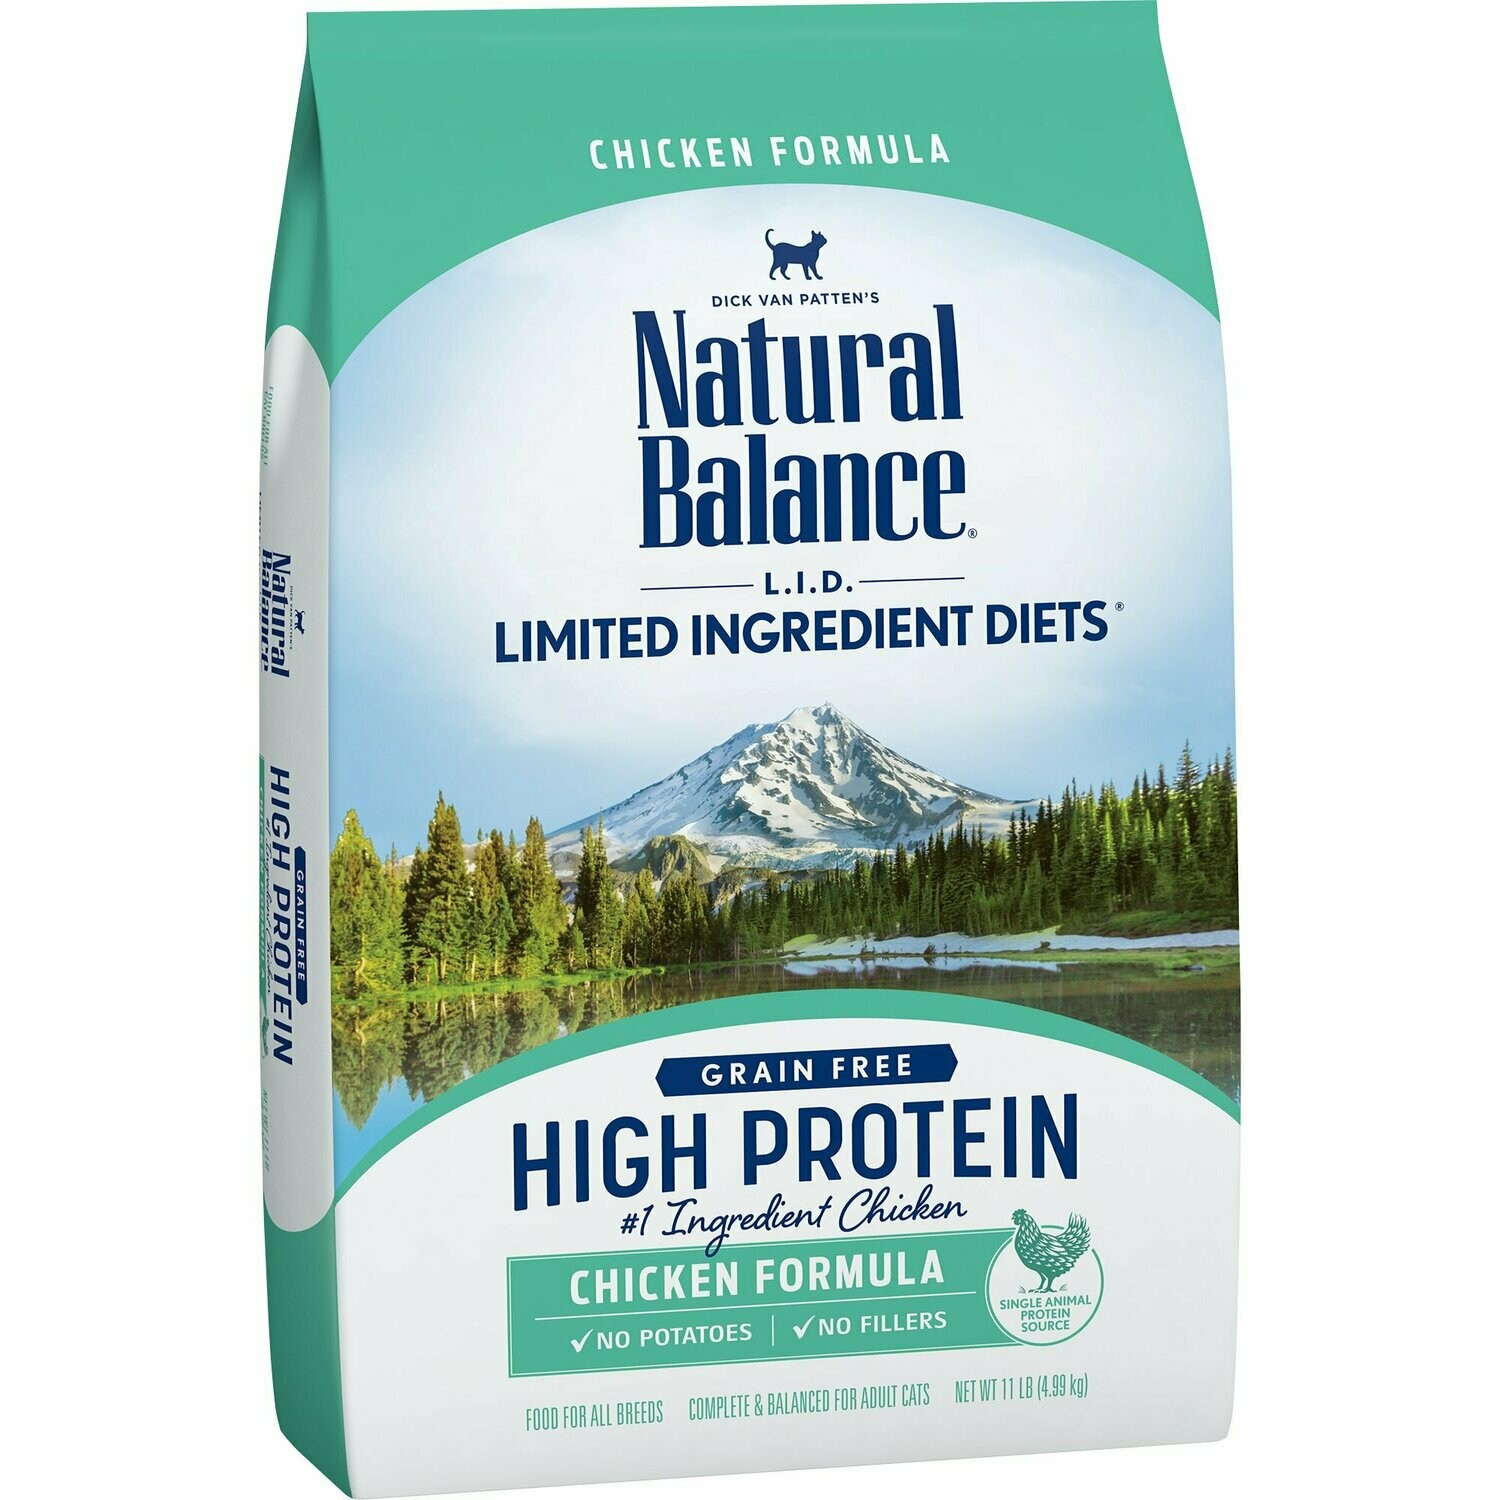 Natural Balance L.I.D. High Protein Chicken Formula Adult Dry Cat Food, 11 lbs. (12/19) (A.K2)